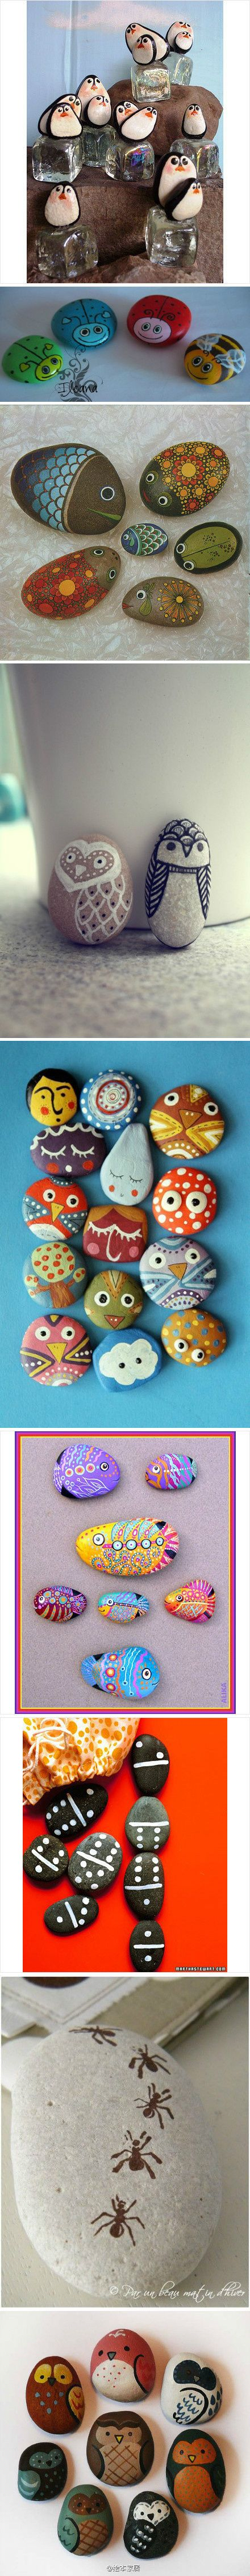 painted rocks..... pet rock!